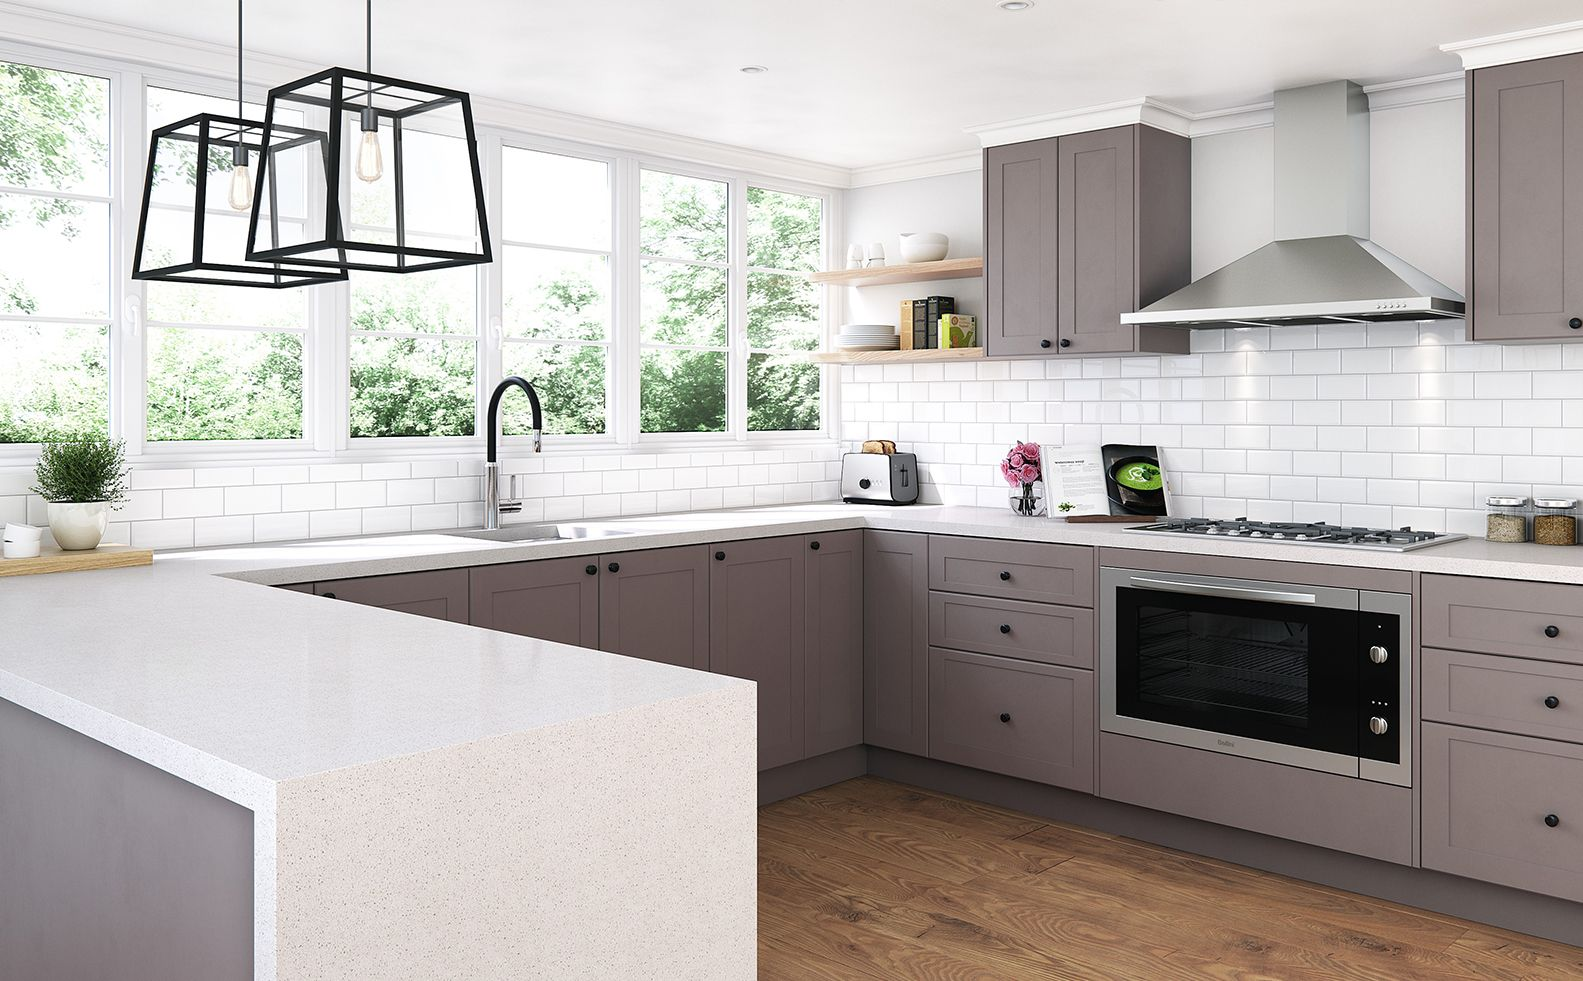 Kitchen Inspiration Gallery Bunnings Warehouse Kitchen